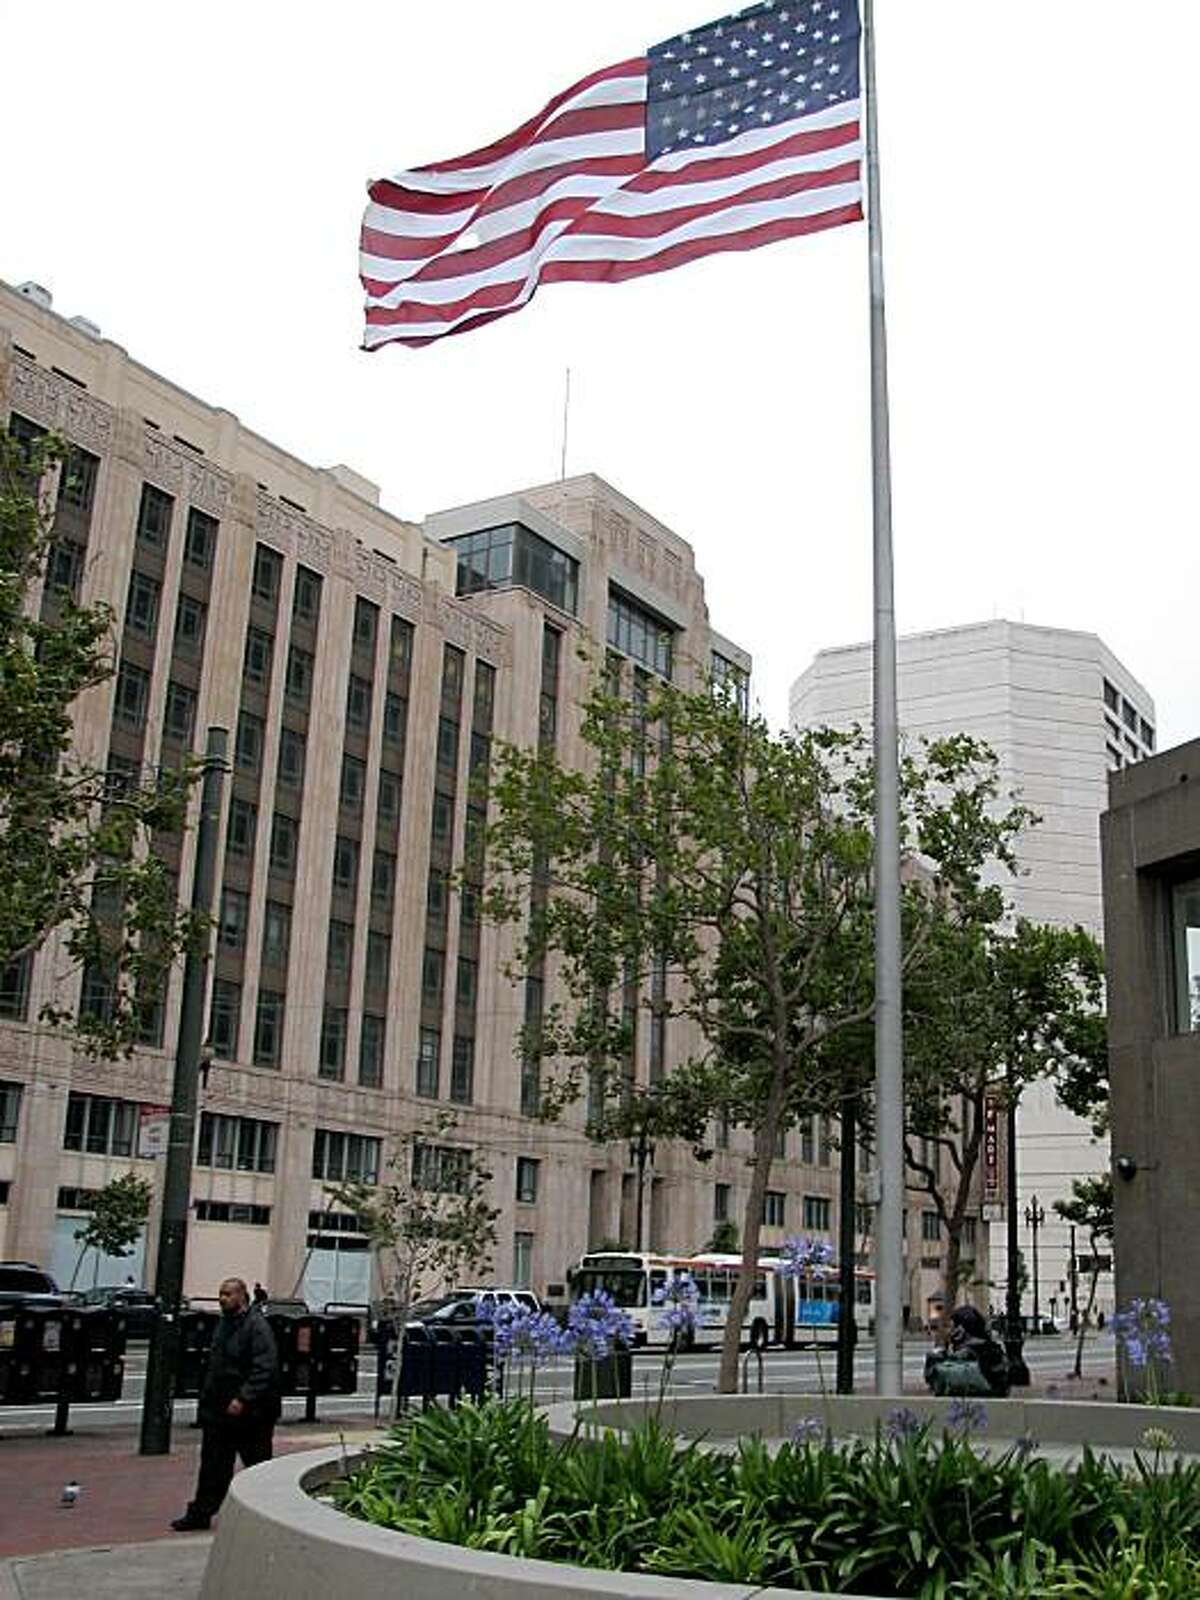 Flag in frnot of u.s. post office at 9th and market